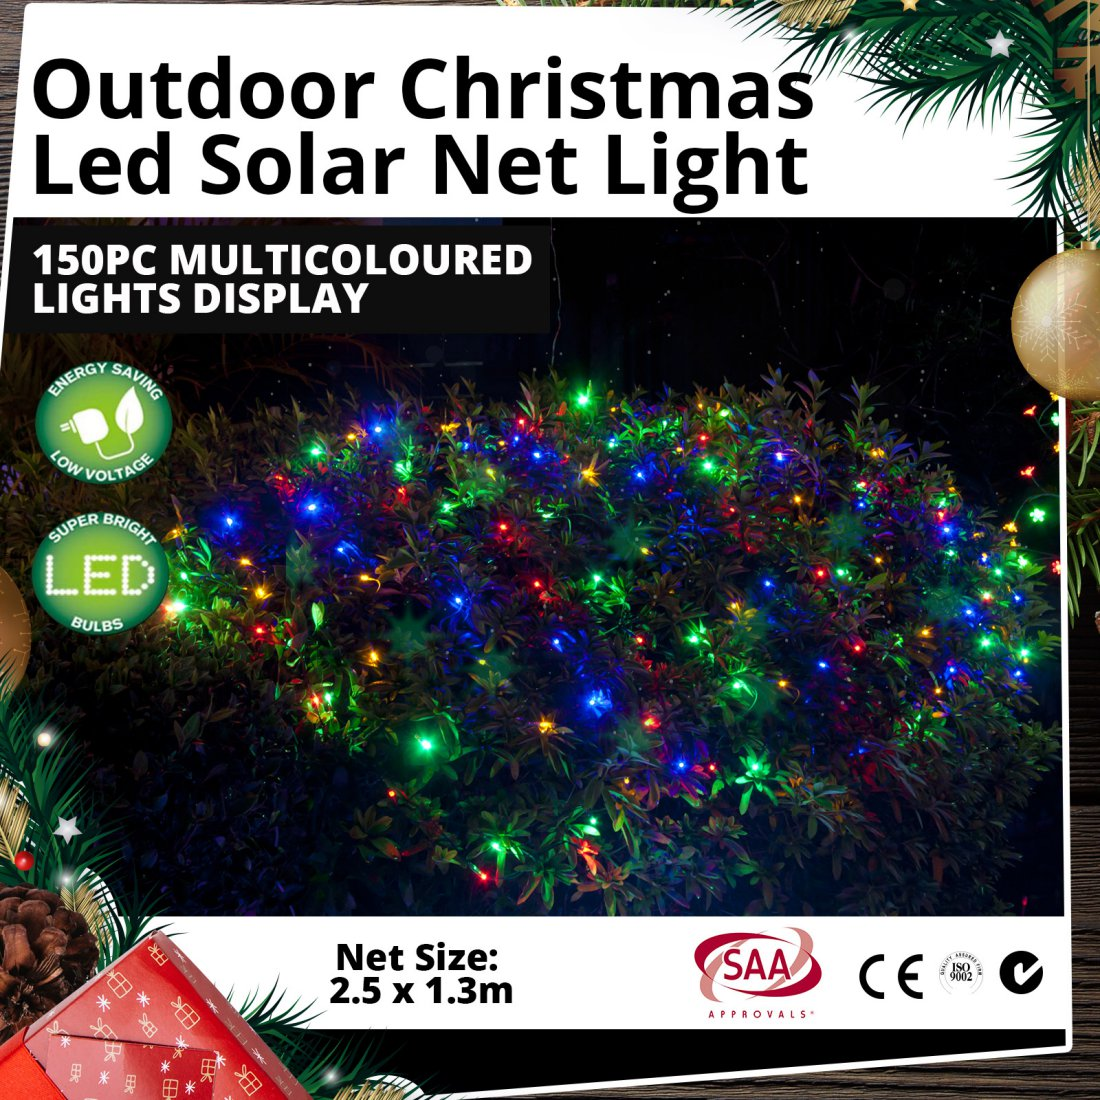 Outdoor LED Solar Net Light 150pc Multicoloured Christmas Lights Display